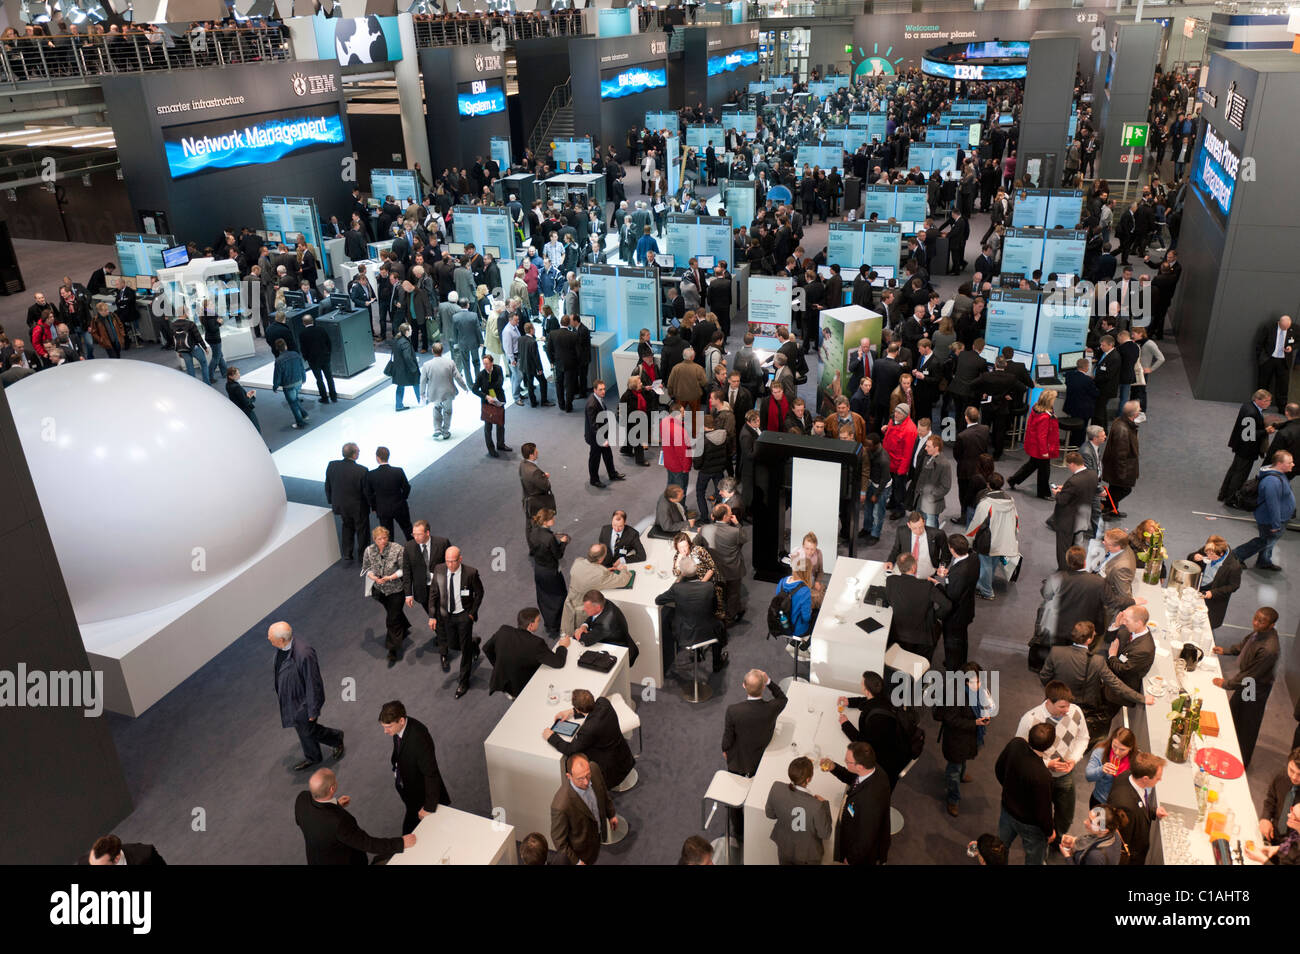 IBM exhibition area at CeBIT 2011 digital and electronics trade fair in Hannover March 2011 Germany - Stock Image